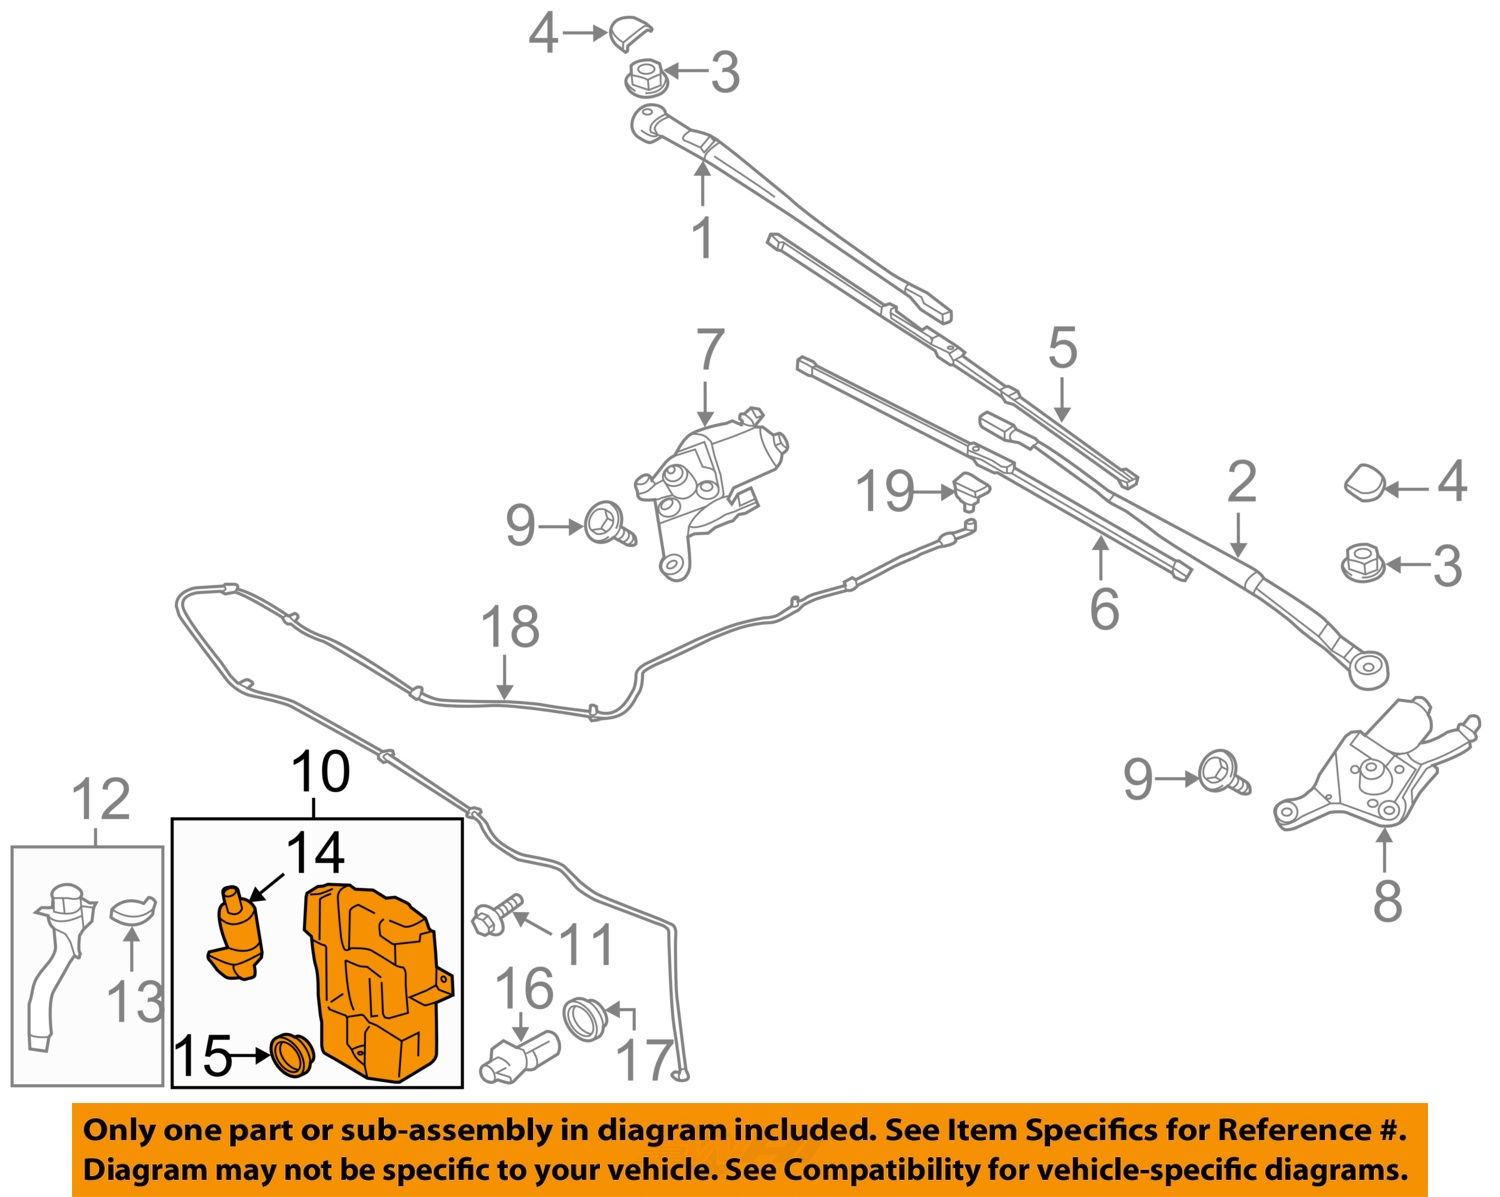 Available Part Diagrams 35 In Body Hardware